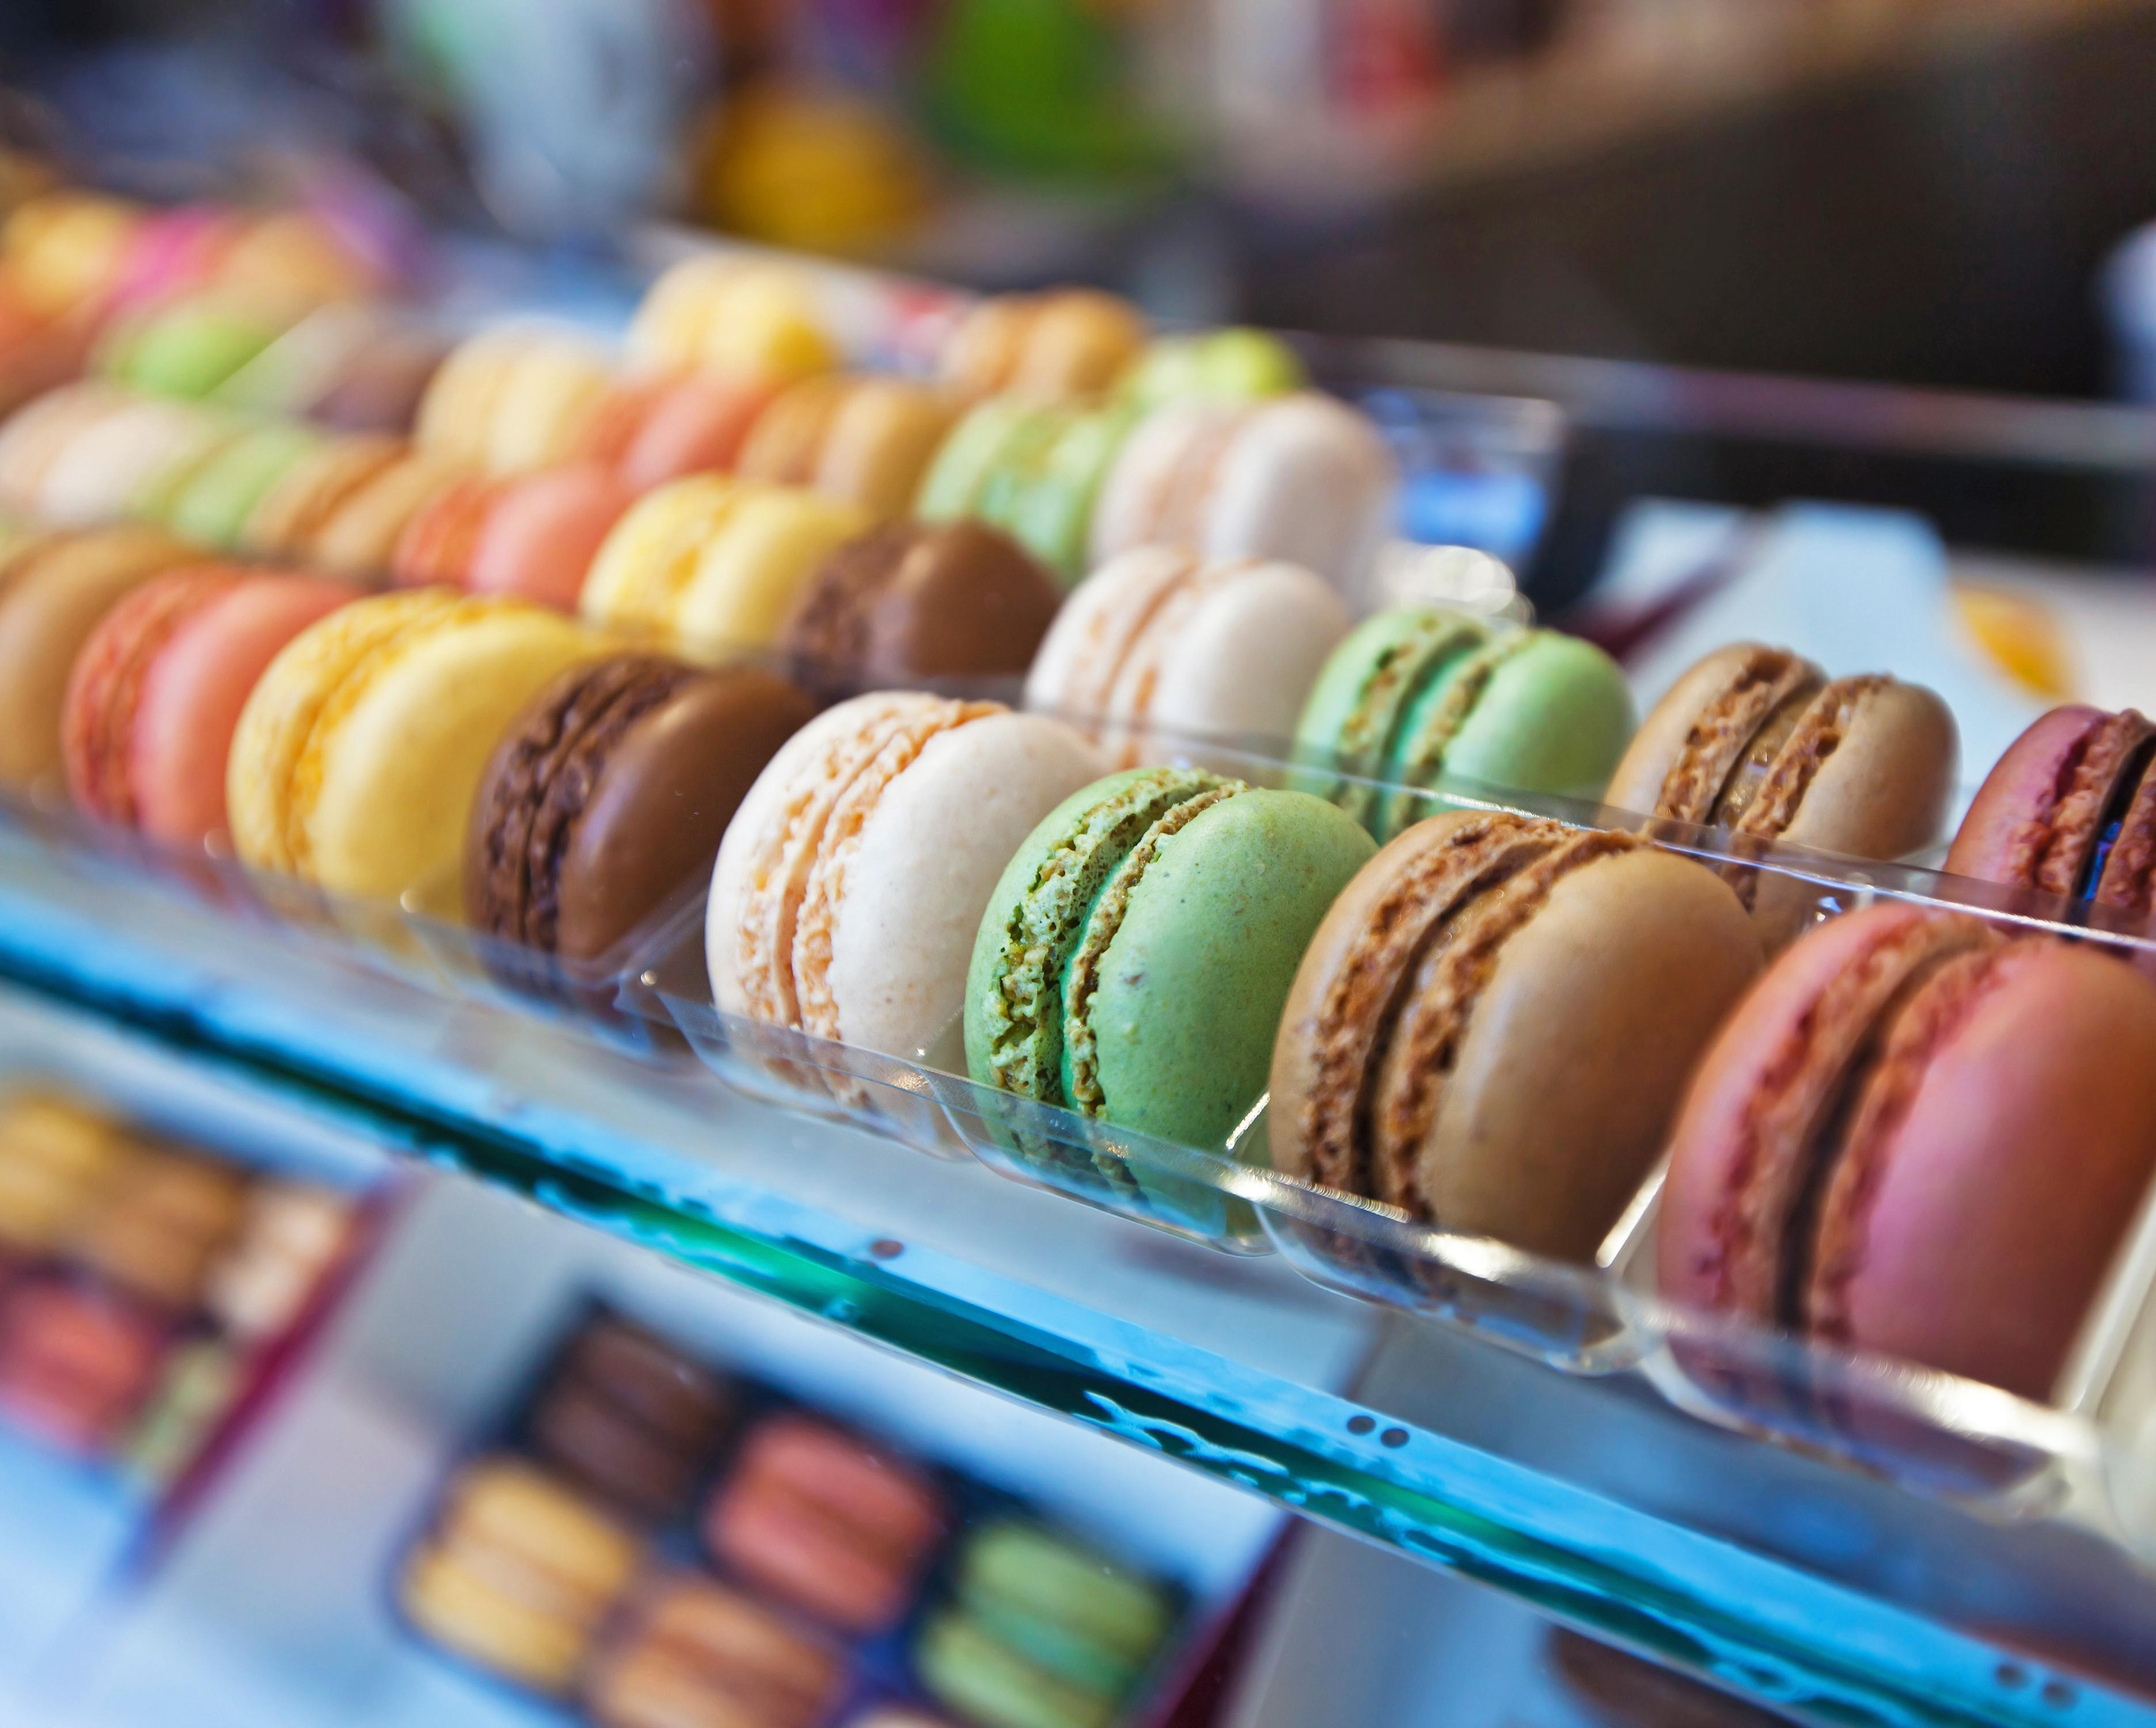 How to Find the Best Macarons in Paris